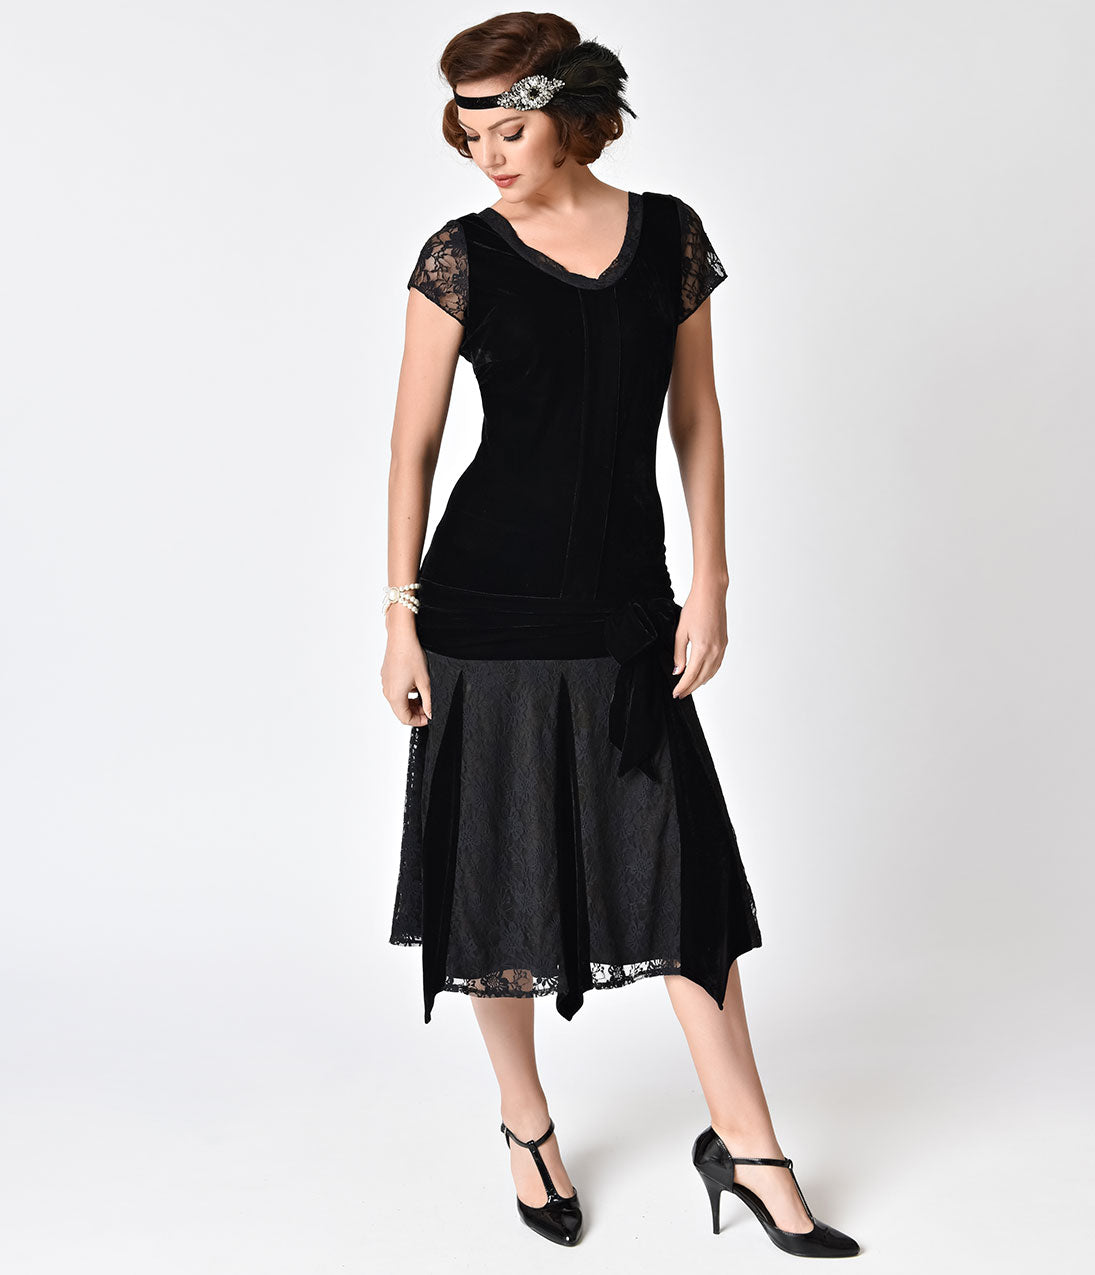 Shop the selection s style clothing and fashion at ModCloth. Find s style dresses, tops, bottoms, swimwear, and other fab women's clothing! s Fashion & s Style Clothing. Refine By Sort By: Buy 2 Socks Get 30% Off. Adrianna Papell Romantic Reverie Maxi Dress $ Sweetest Spread Fascinator in Black.